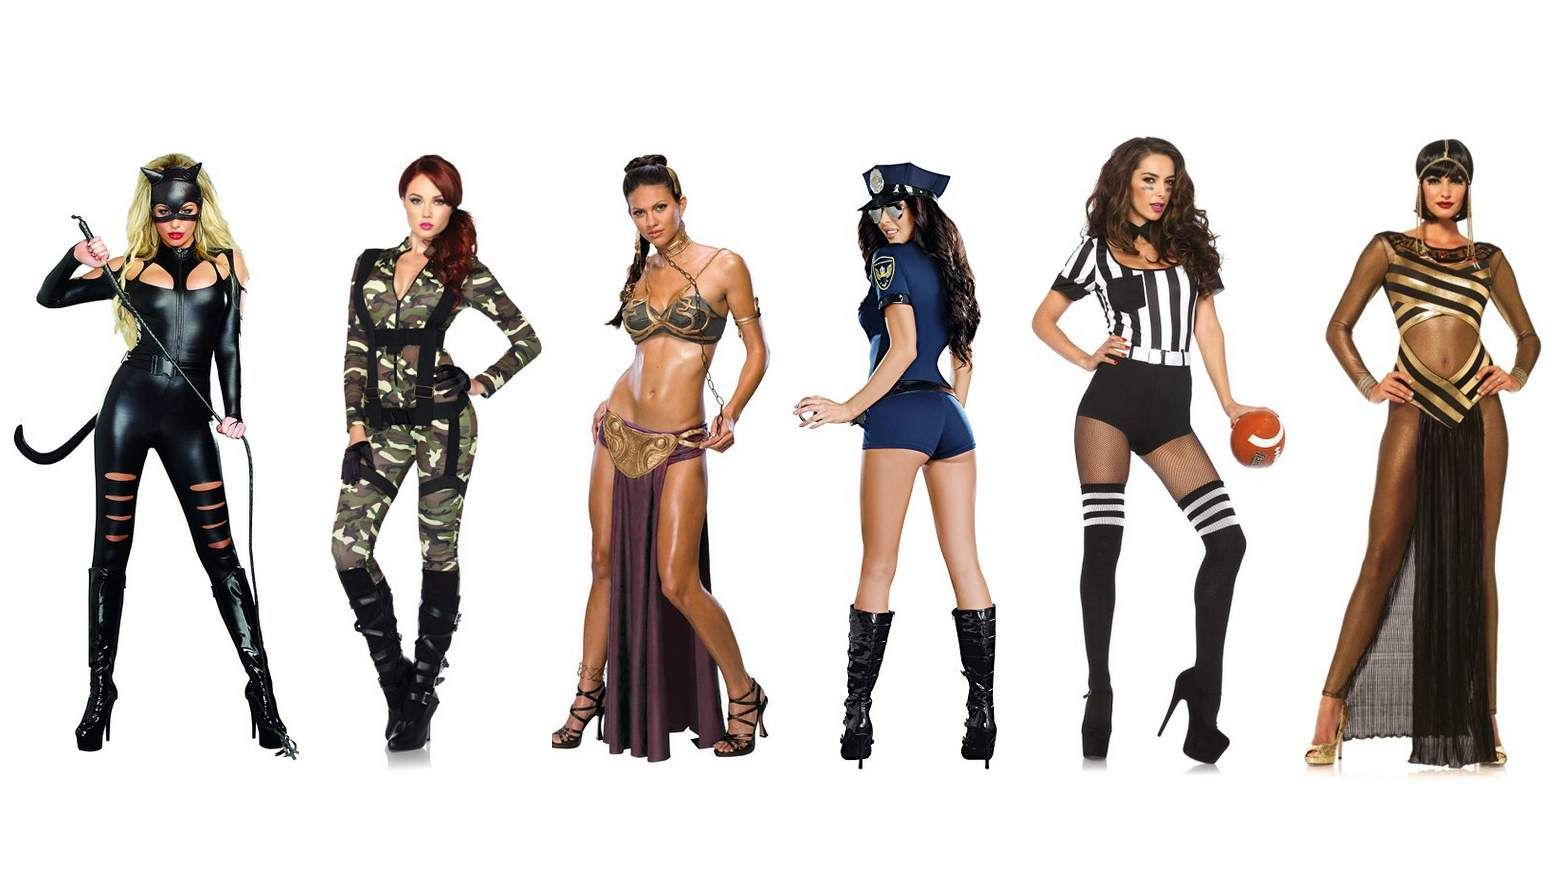 Top 10 Best Sexy Women's Halloween Costumes 2016